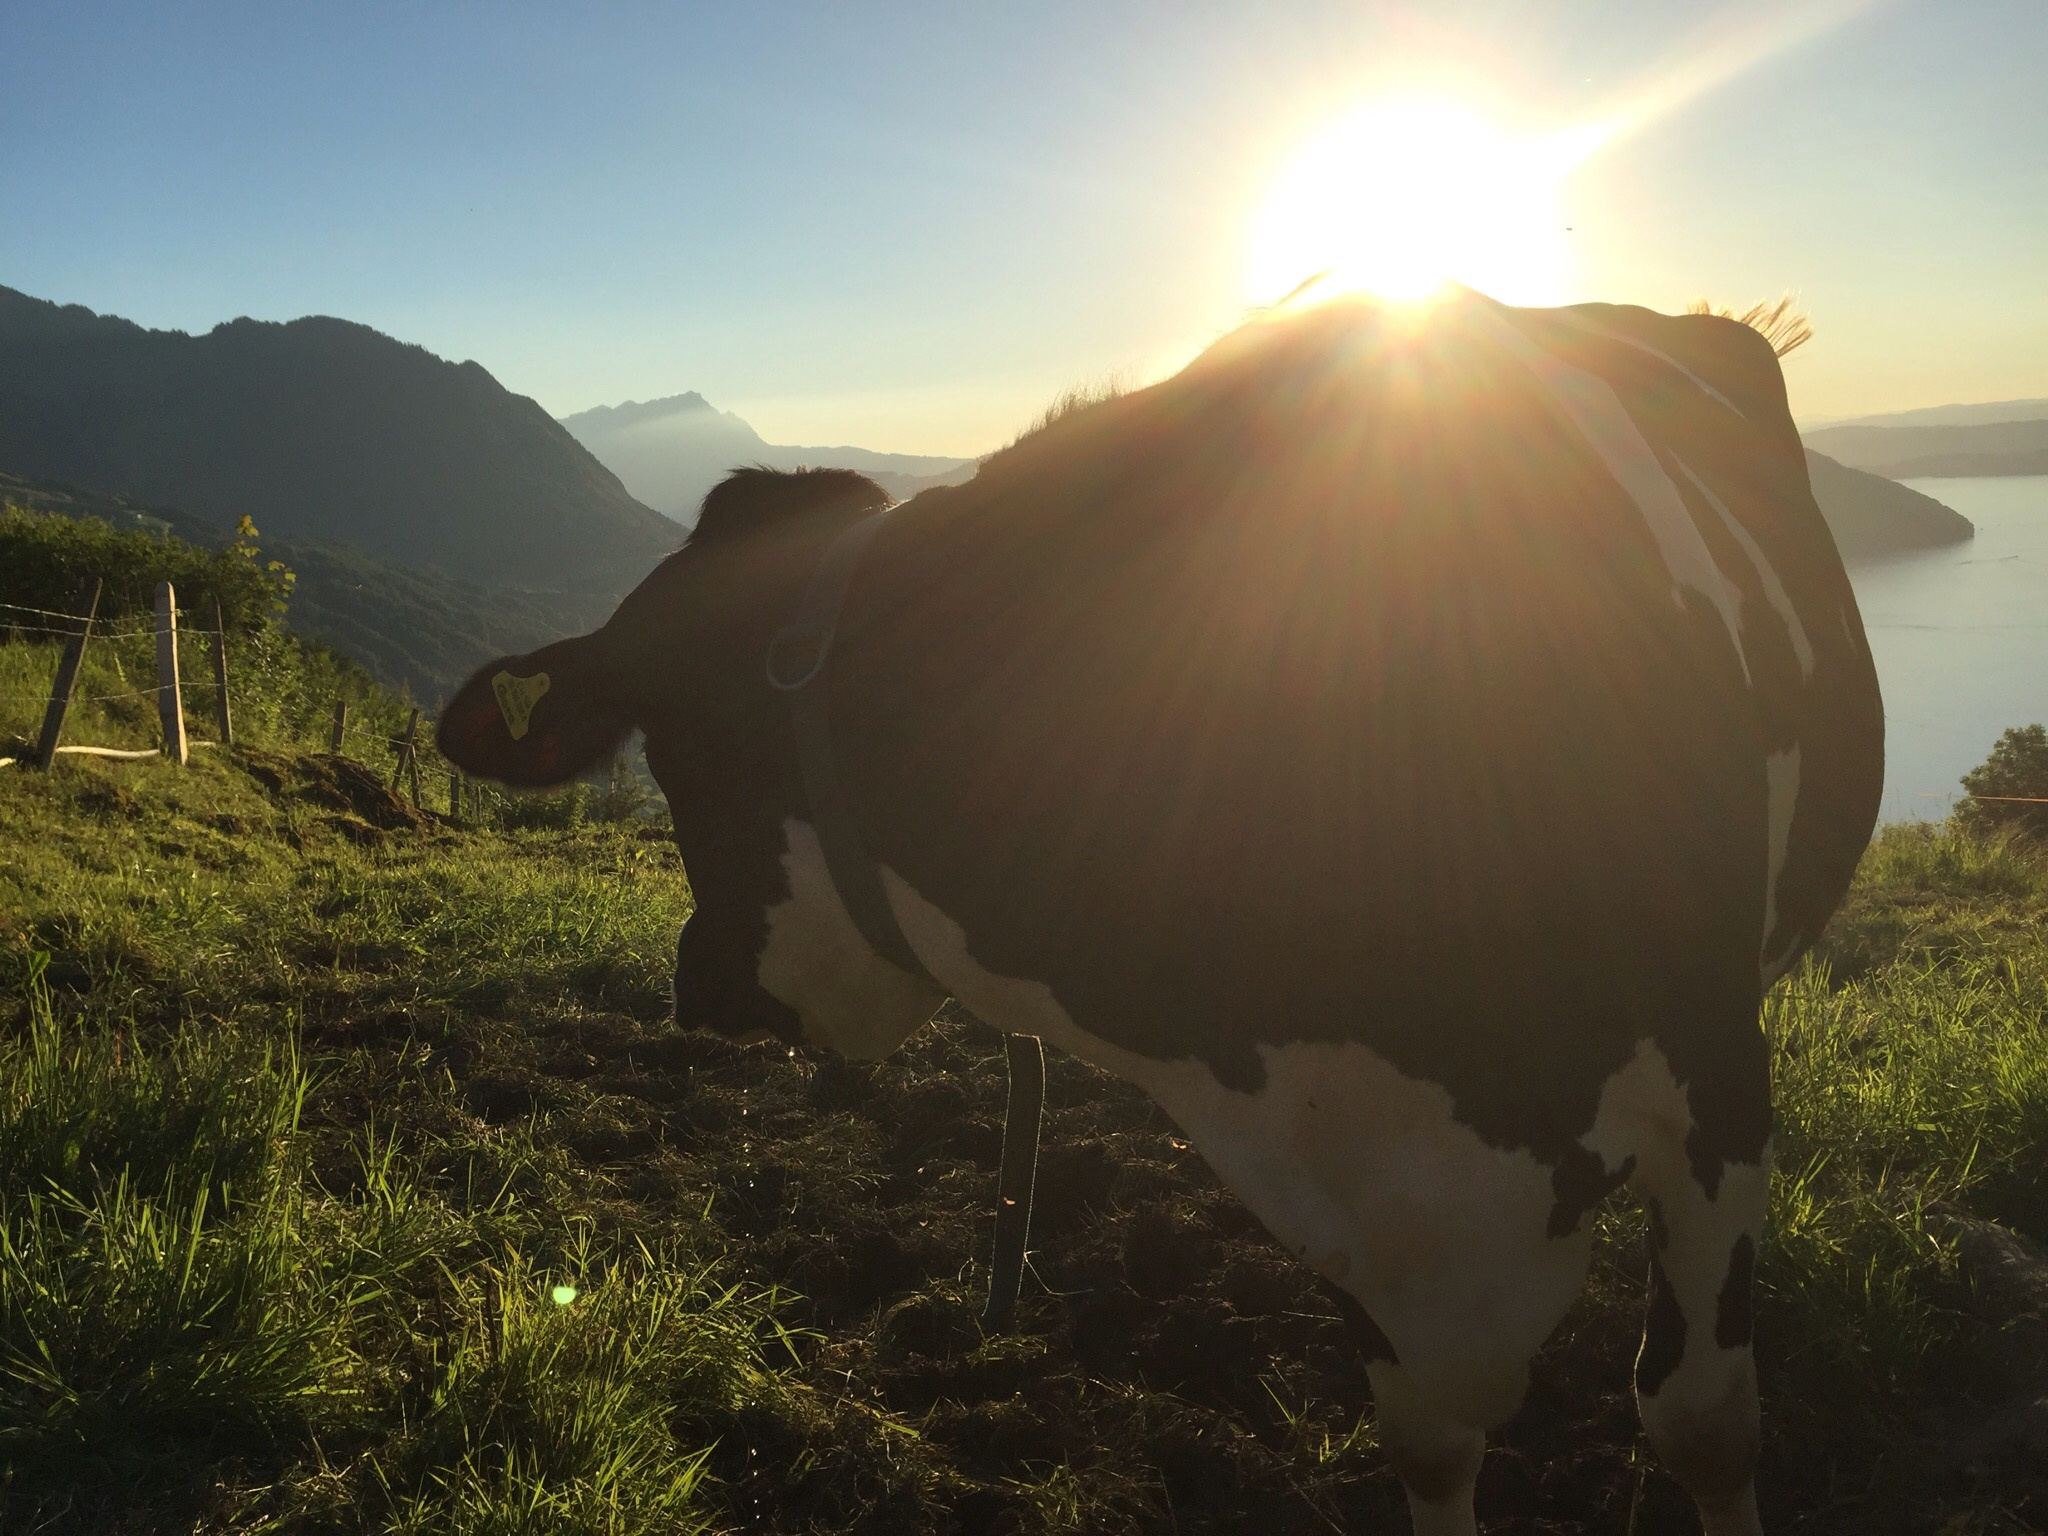 Cow at sunset by Douwe Hoekstra